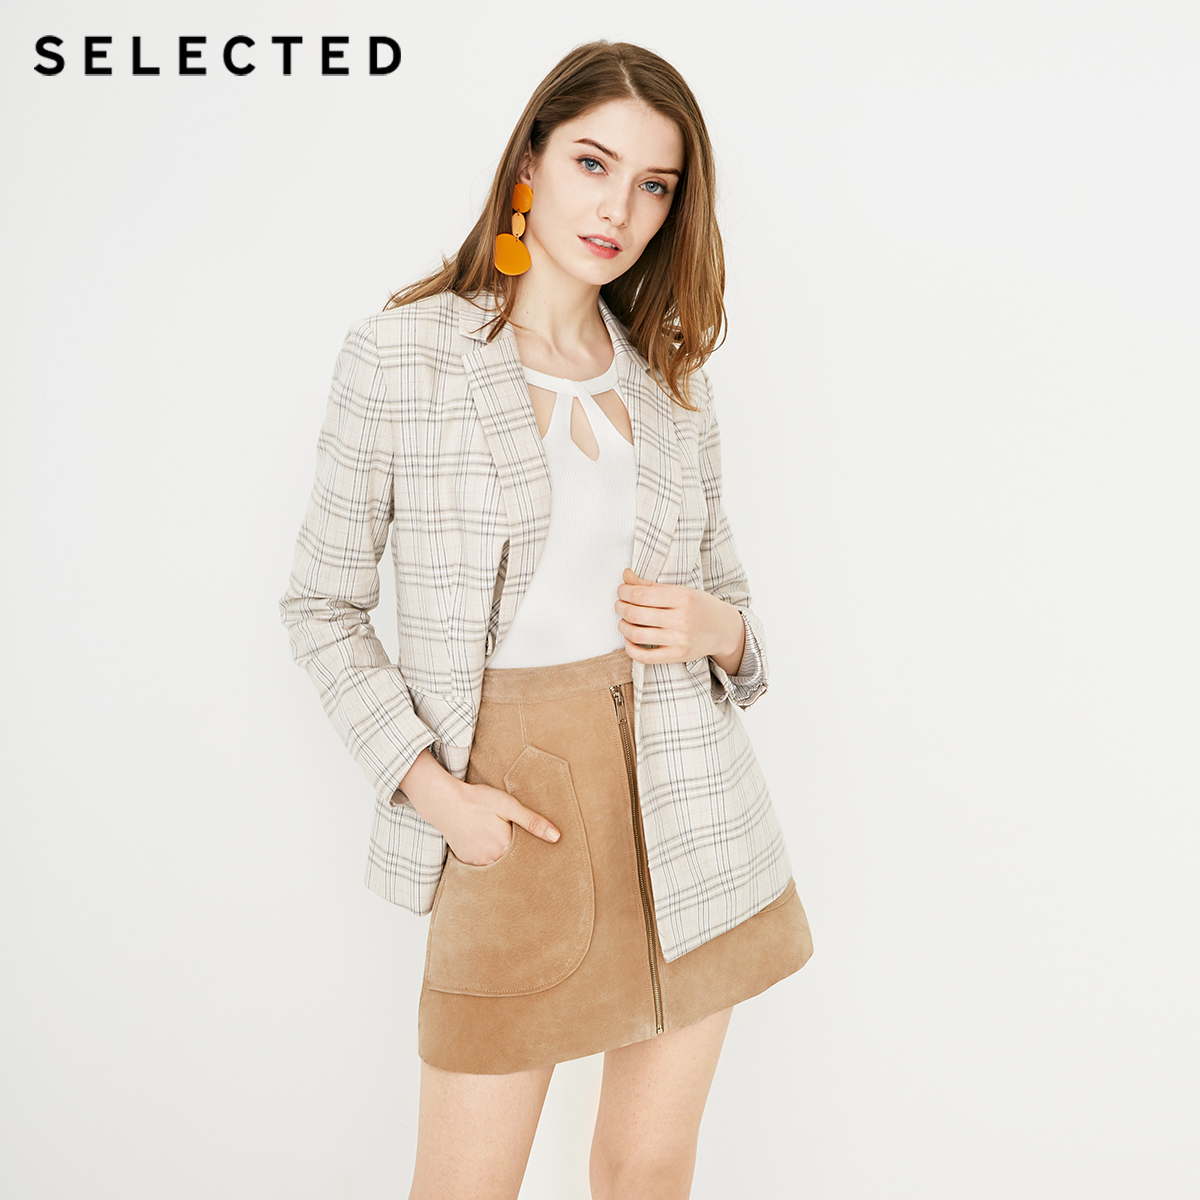 SELECTED Women's Cotton And Linen Checked Double-breasted Suit Jacket S|419208501